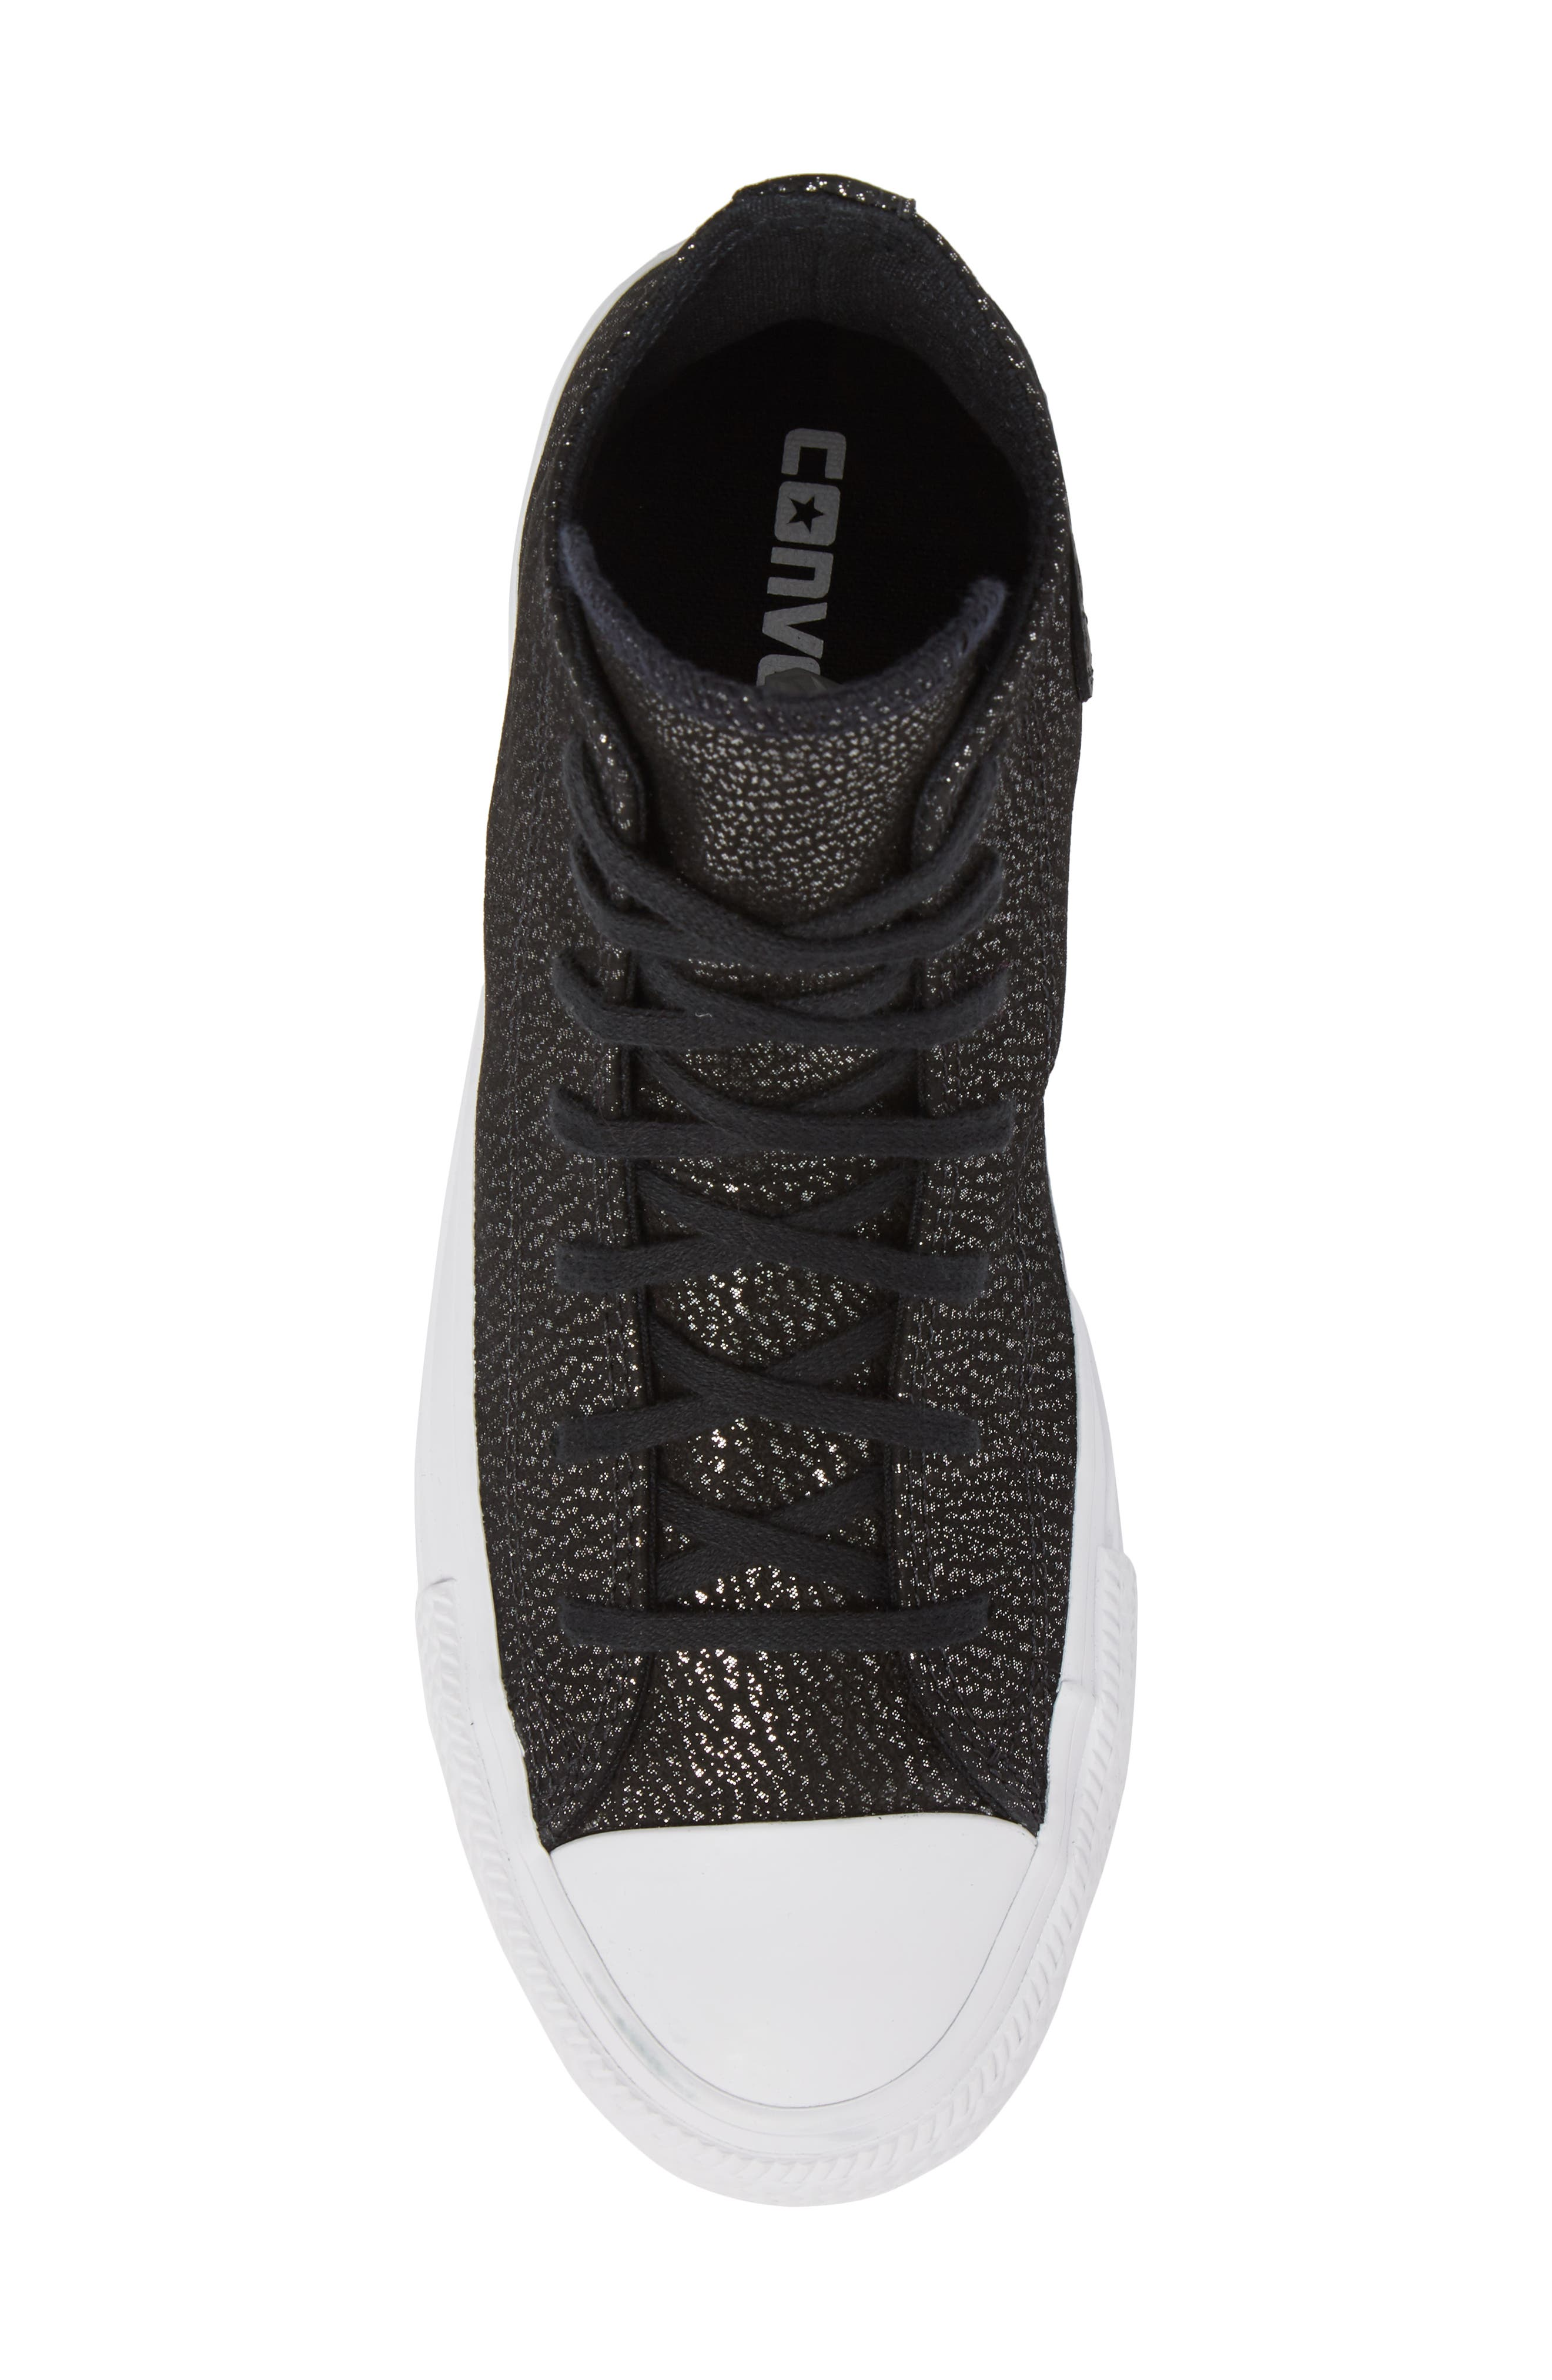 Chuck Taylor<sup>®</sup> All Star<sup>®</sup> Tipped Metallic High Top Sneaker,                             Alternate thumbnail 5, color,                             Black